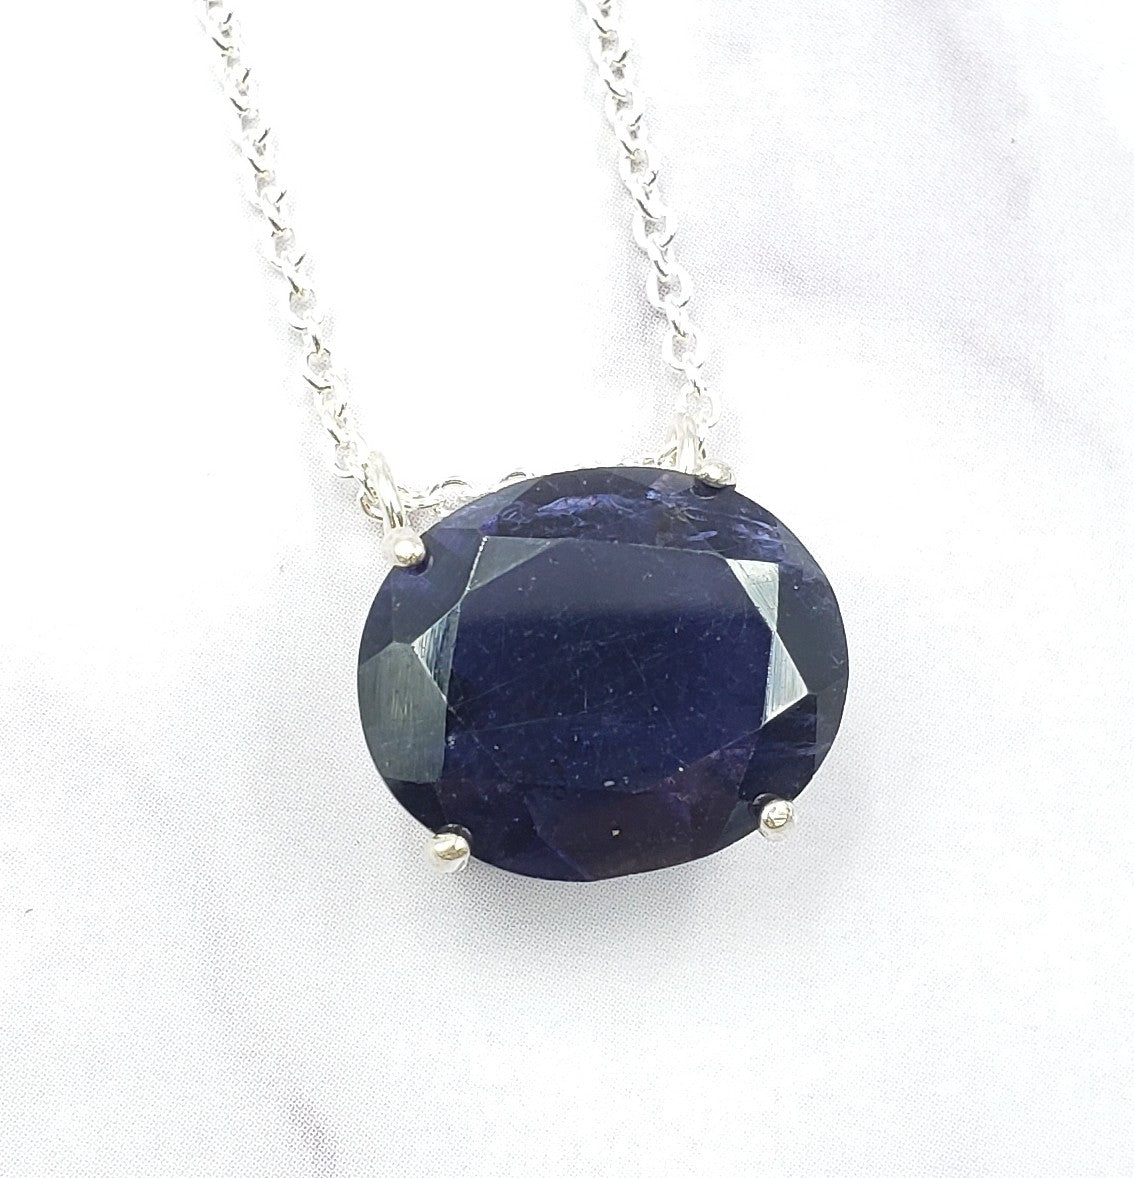 Oval Iolite Necklace